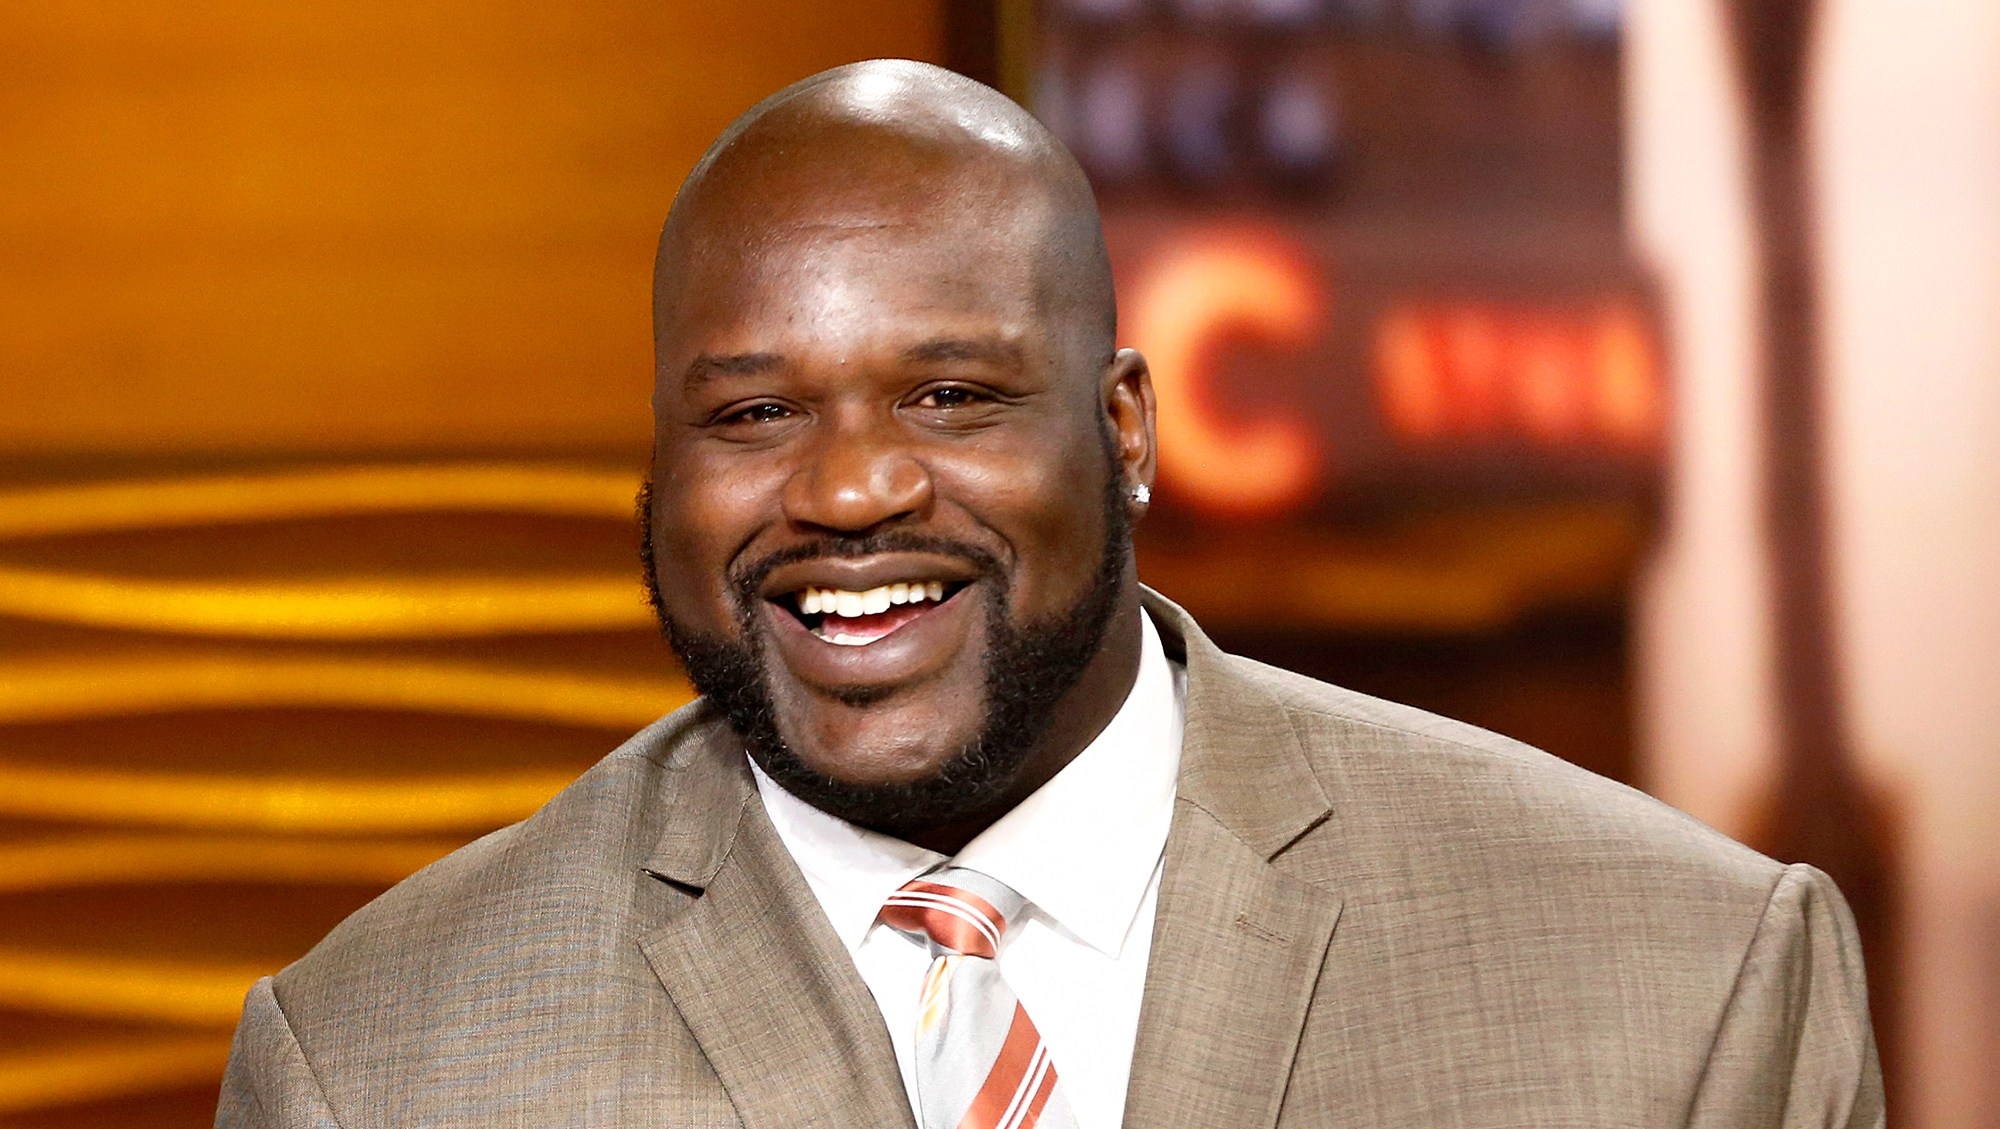 Shaquille O'Neal appears on 'Today' show